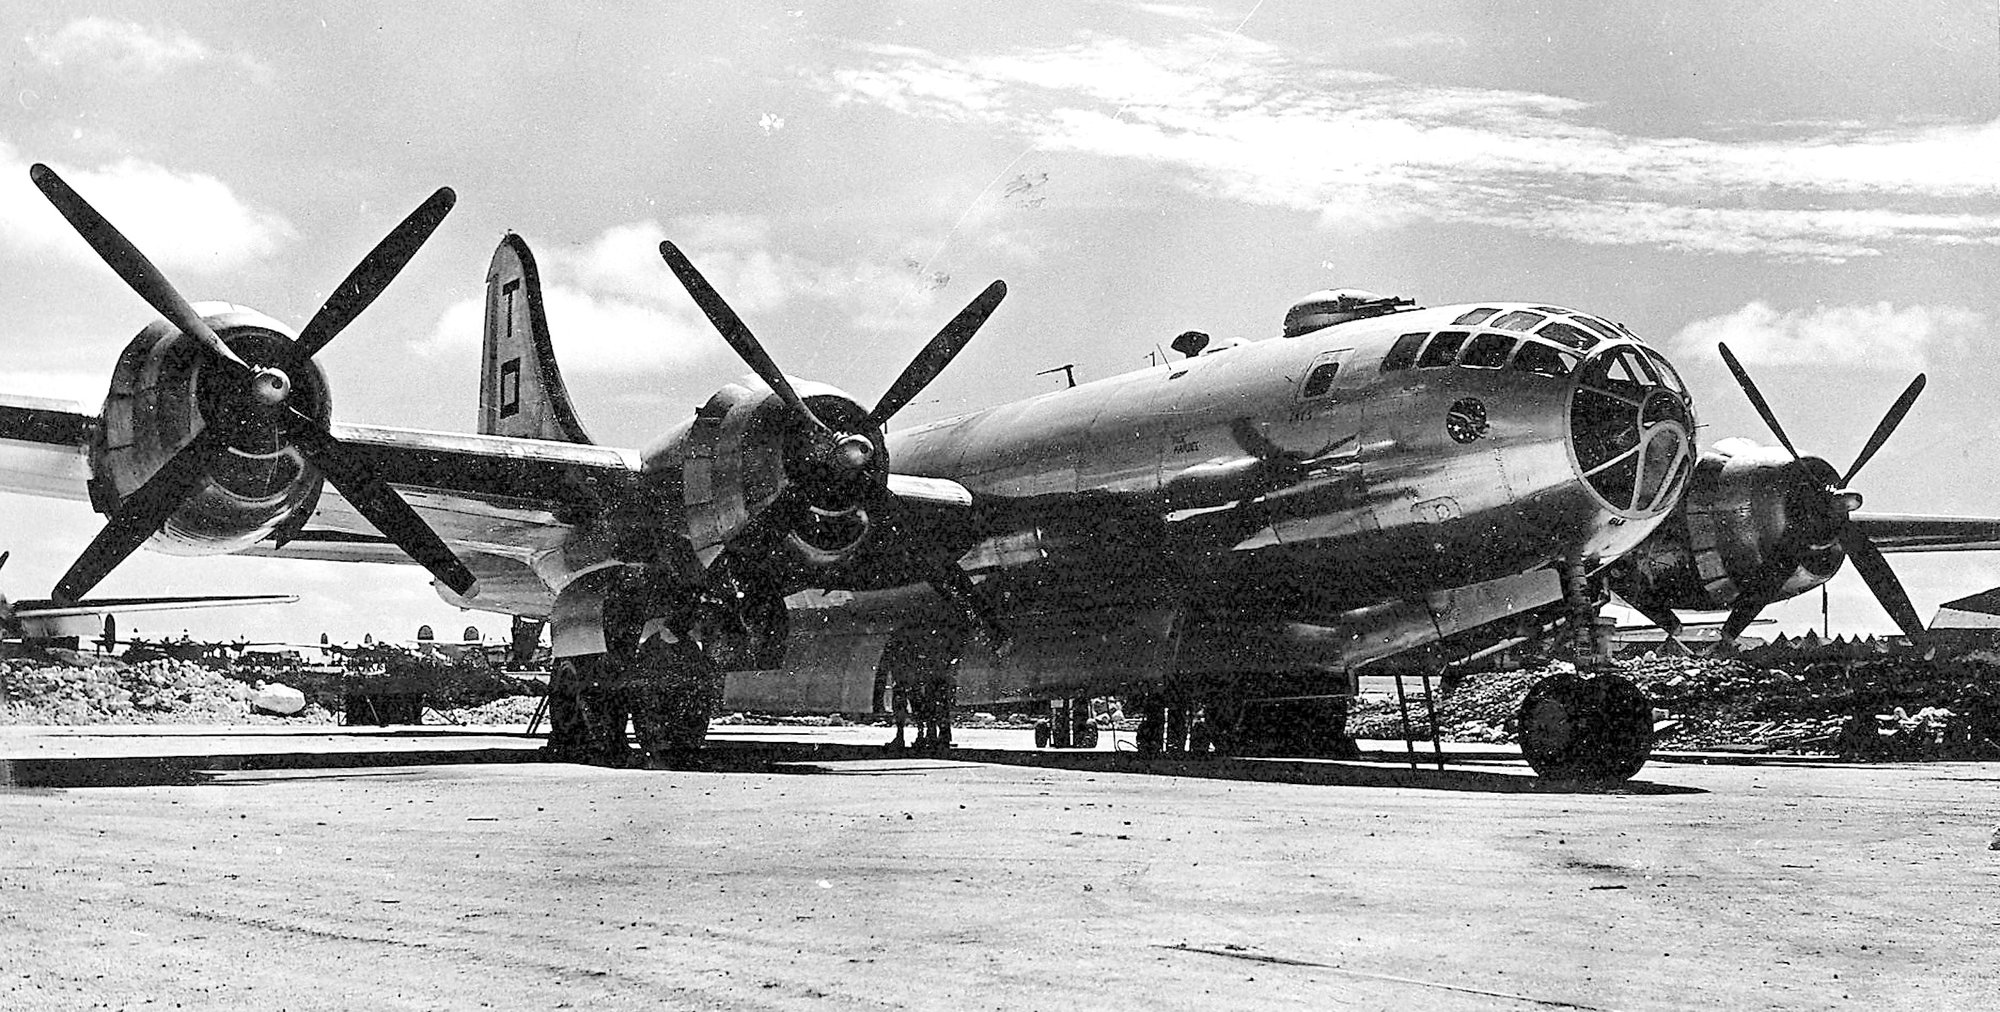 This B-29 was used by Crowson and other photographers for aerial shots over Japan.